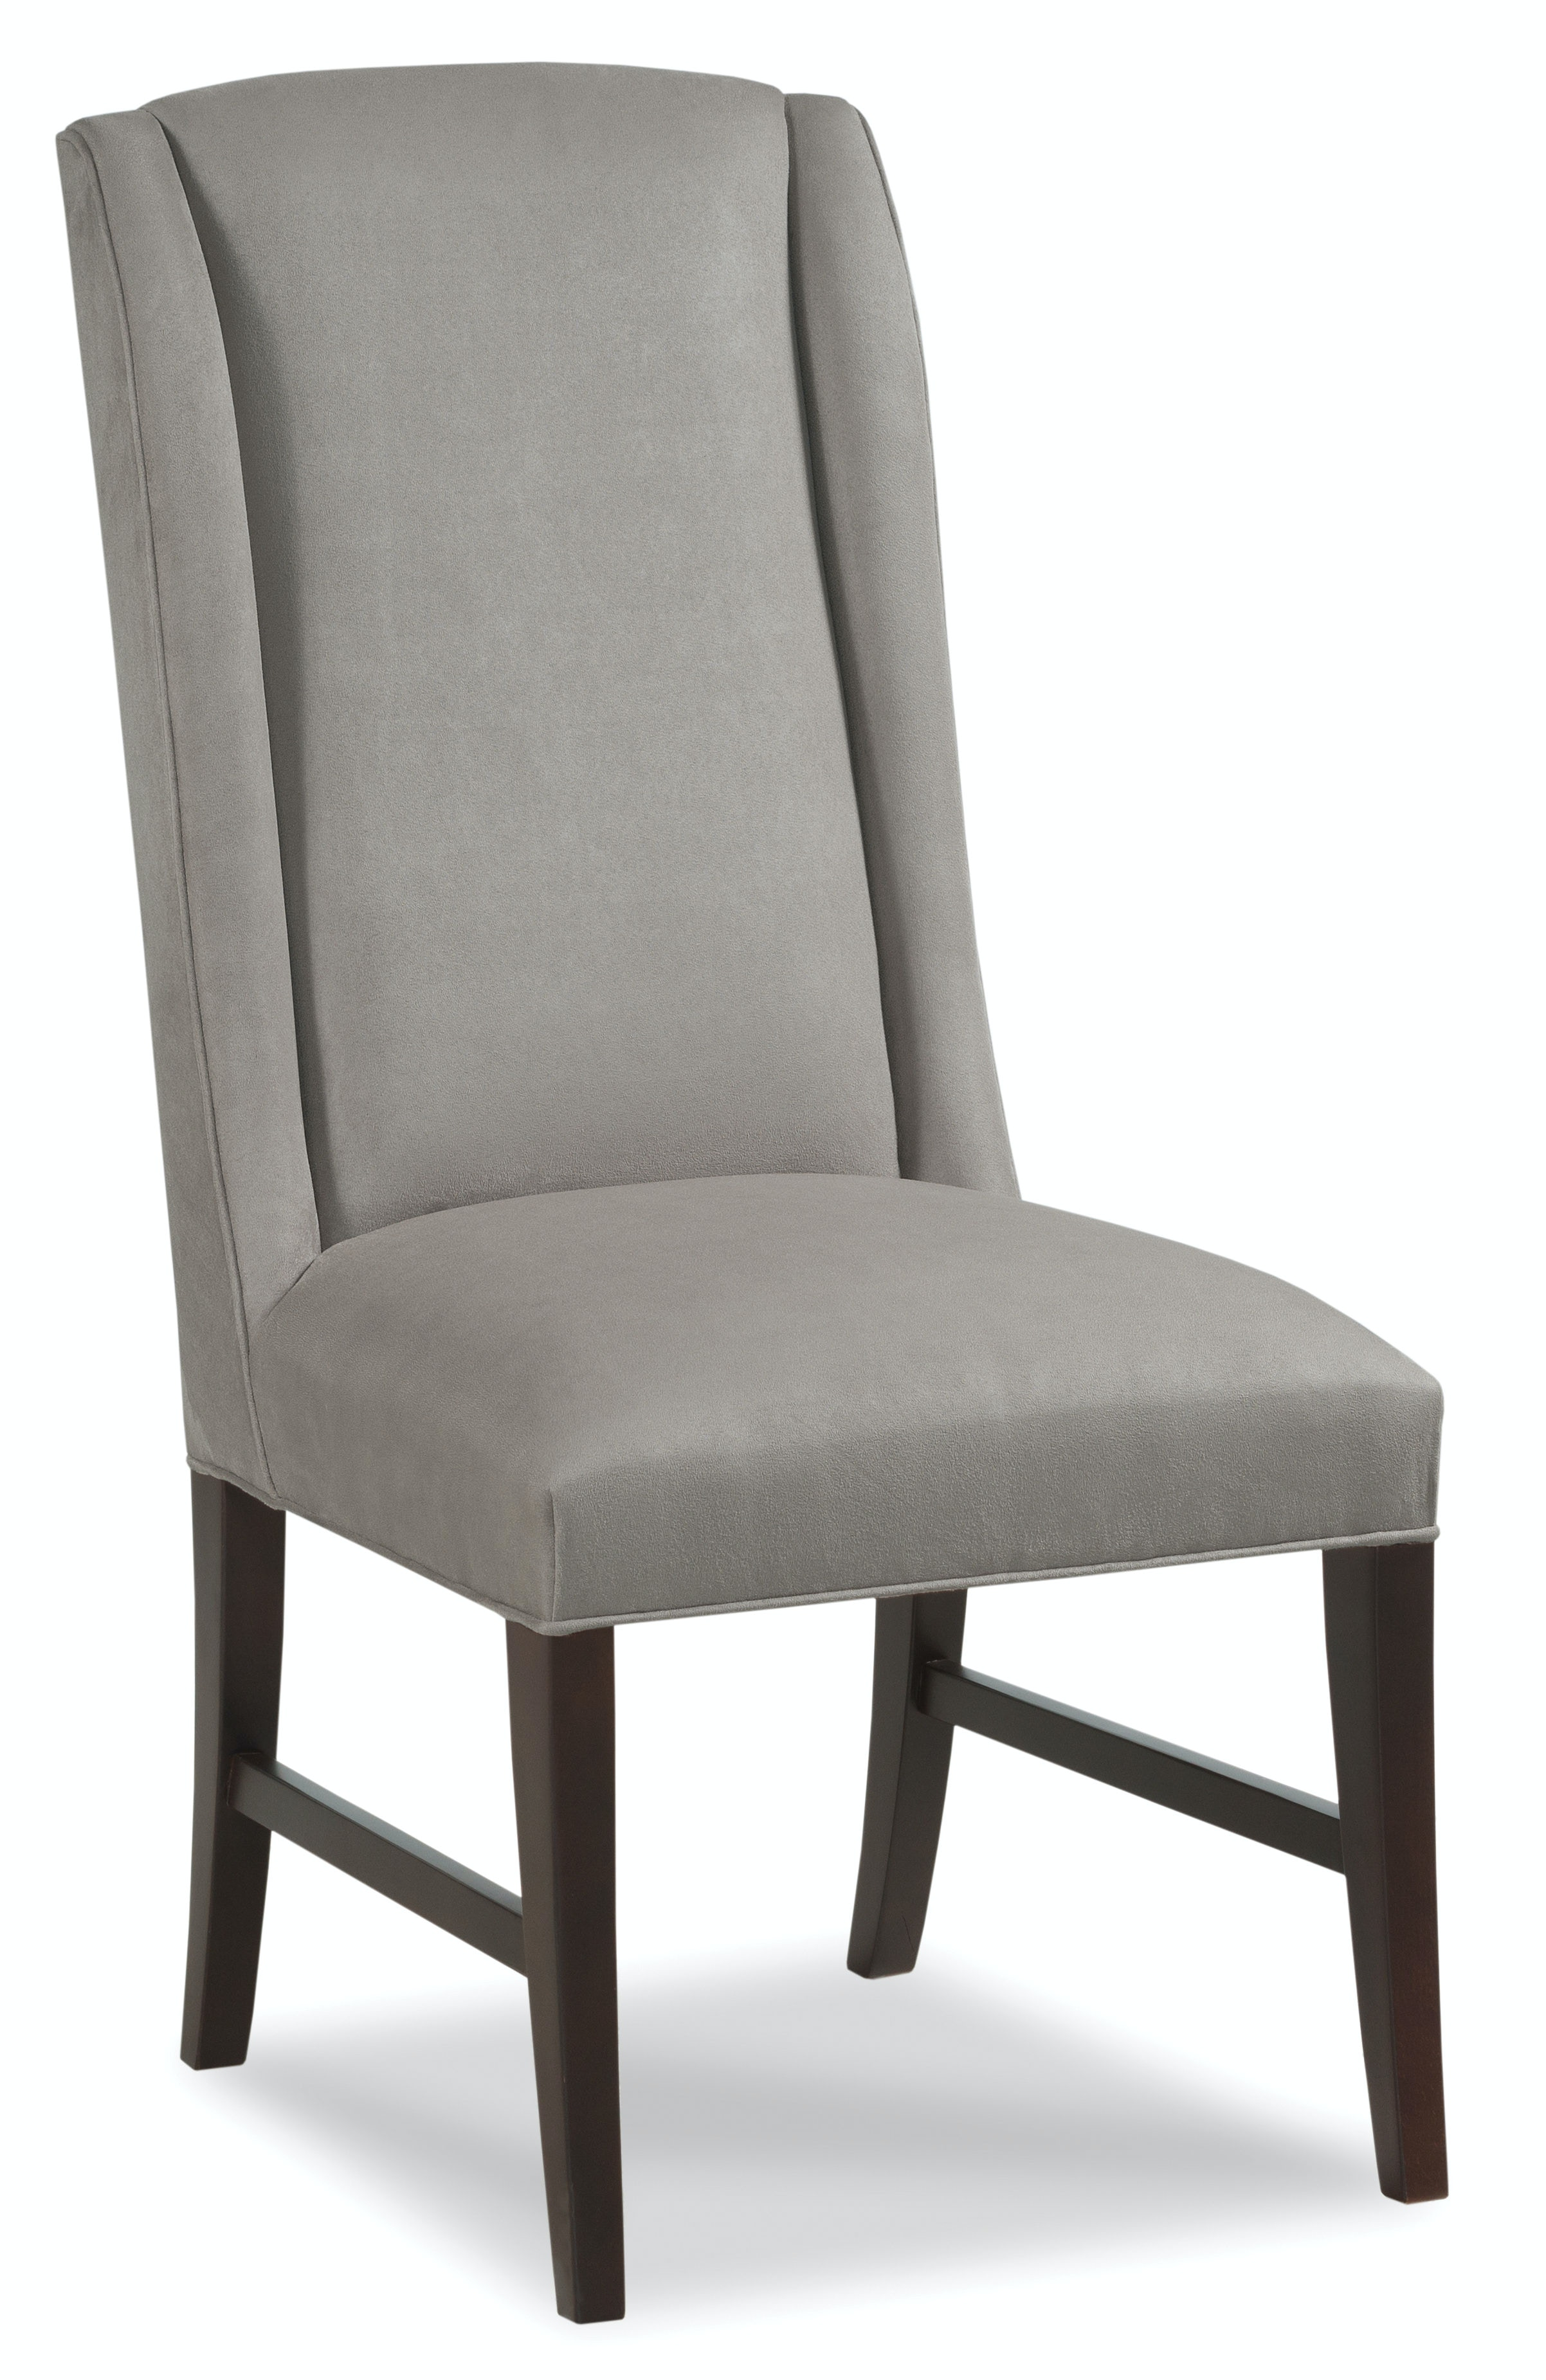 Fairfield Chair Company Carla Side Chair 8773 05